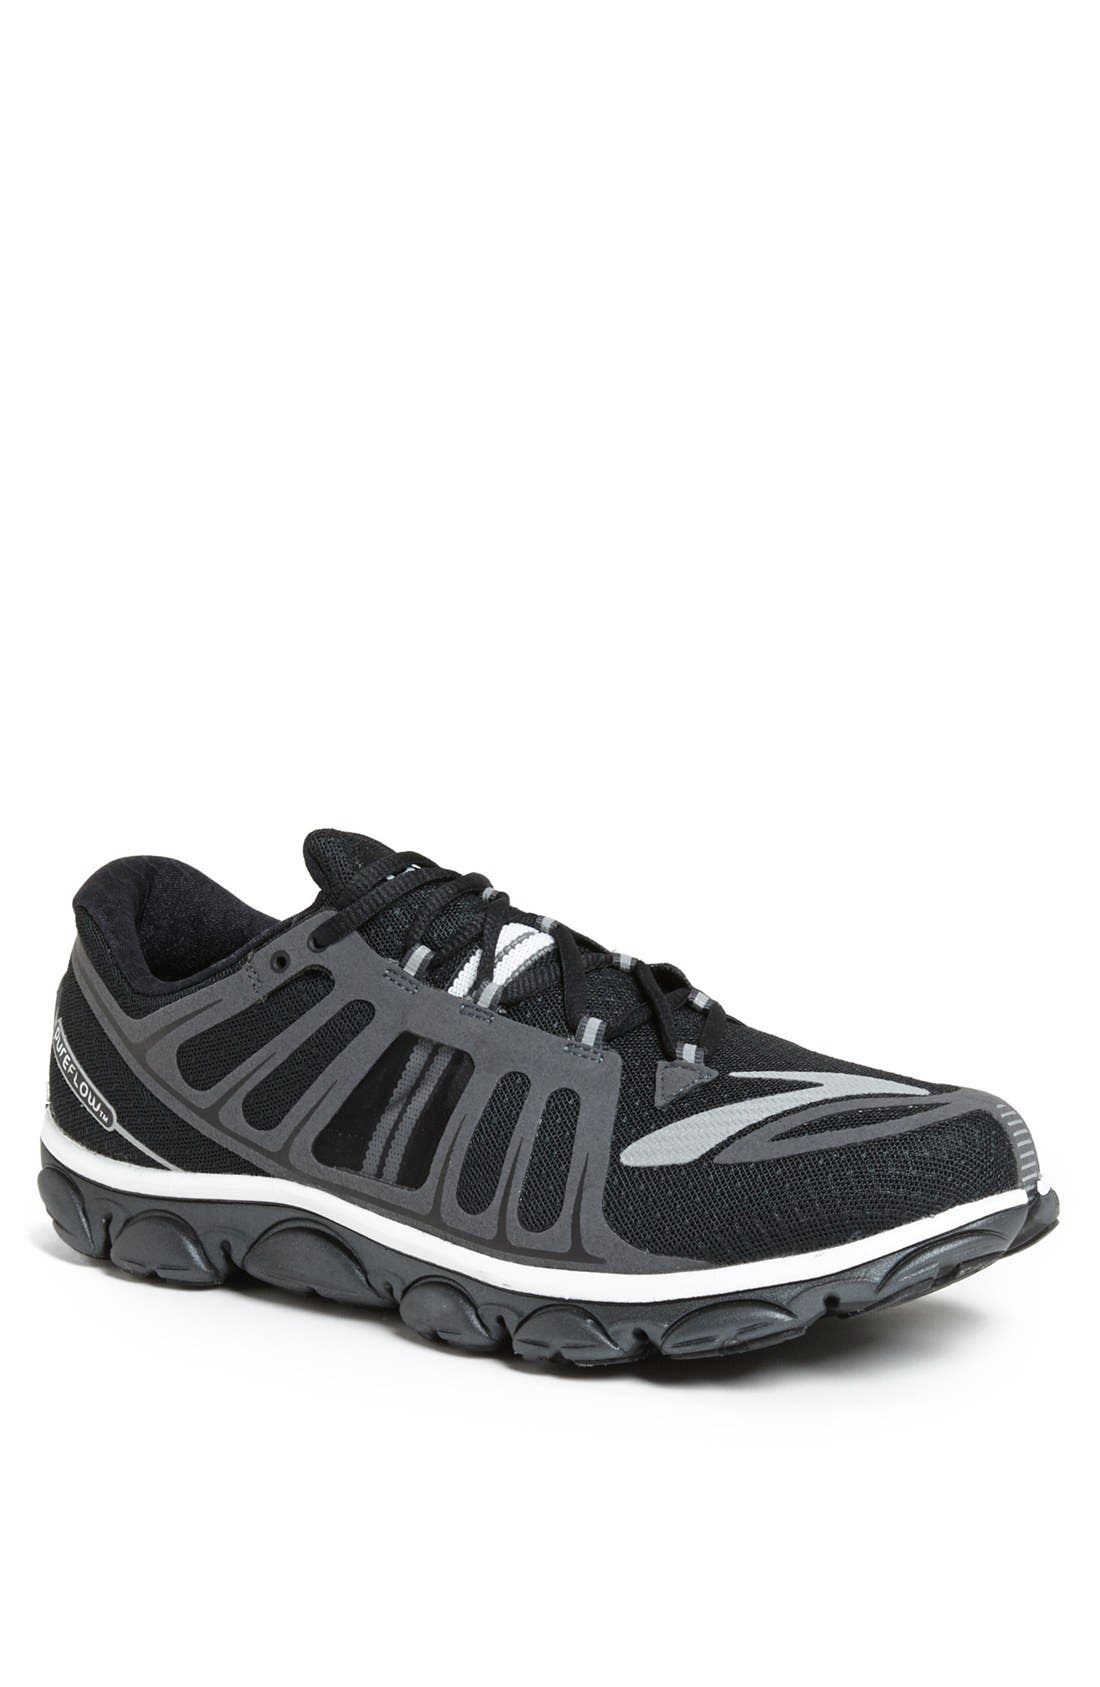 Alternate Image 1 Selected - Brooks 'PureFlow 2' Running Shoe (Men)